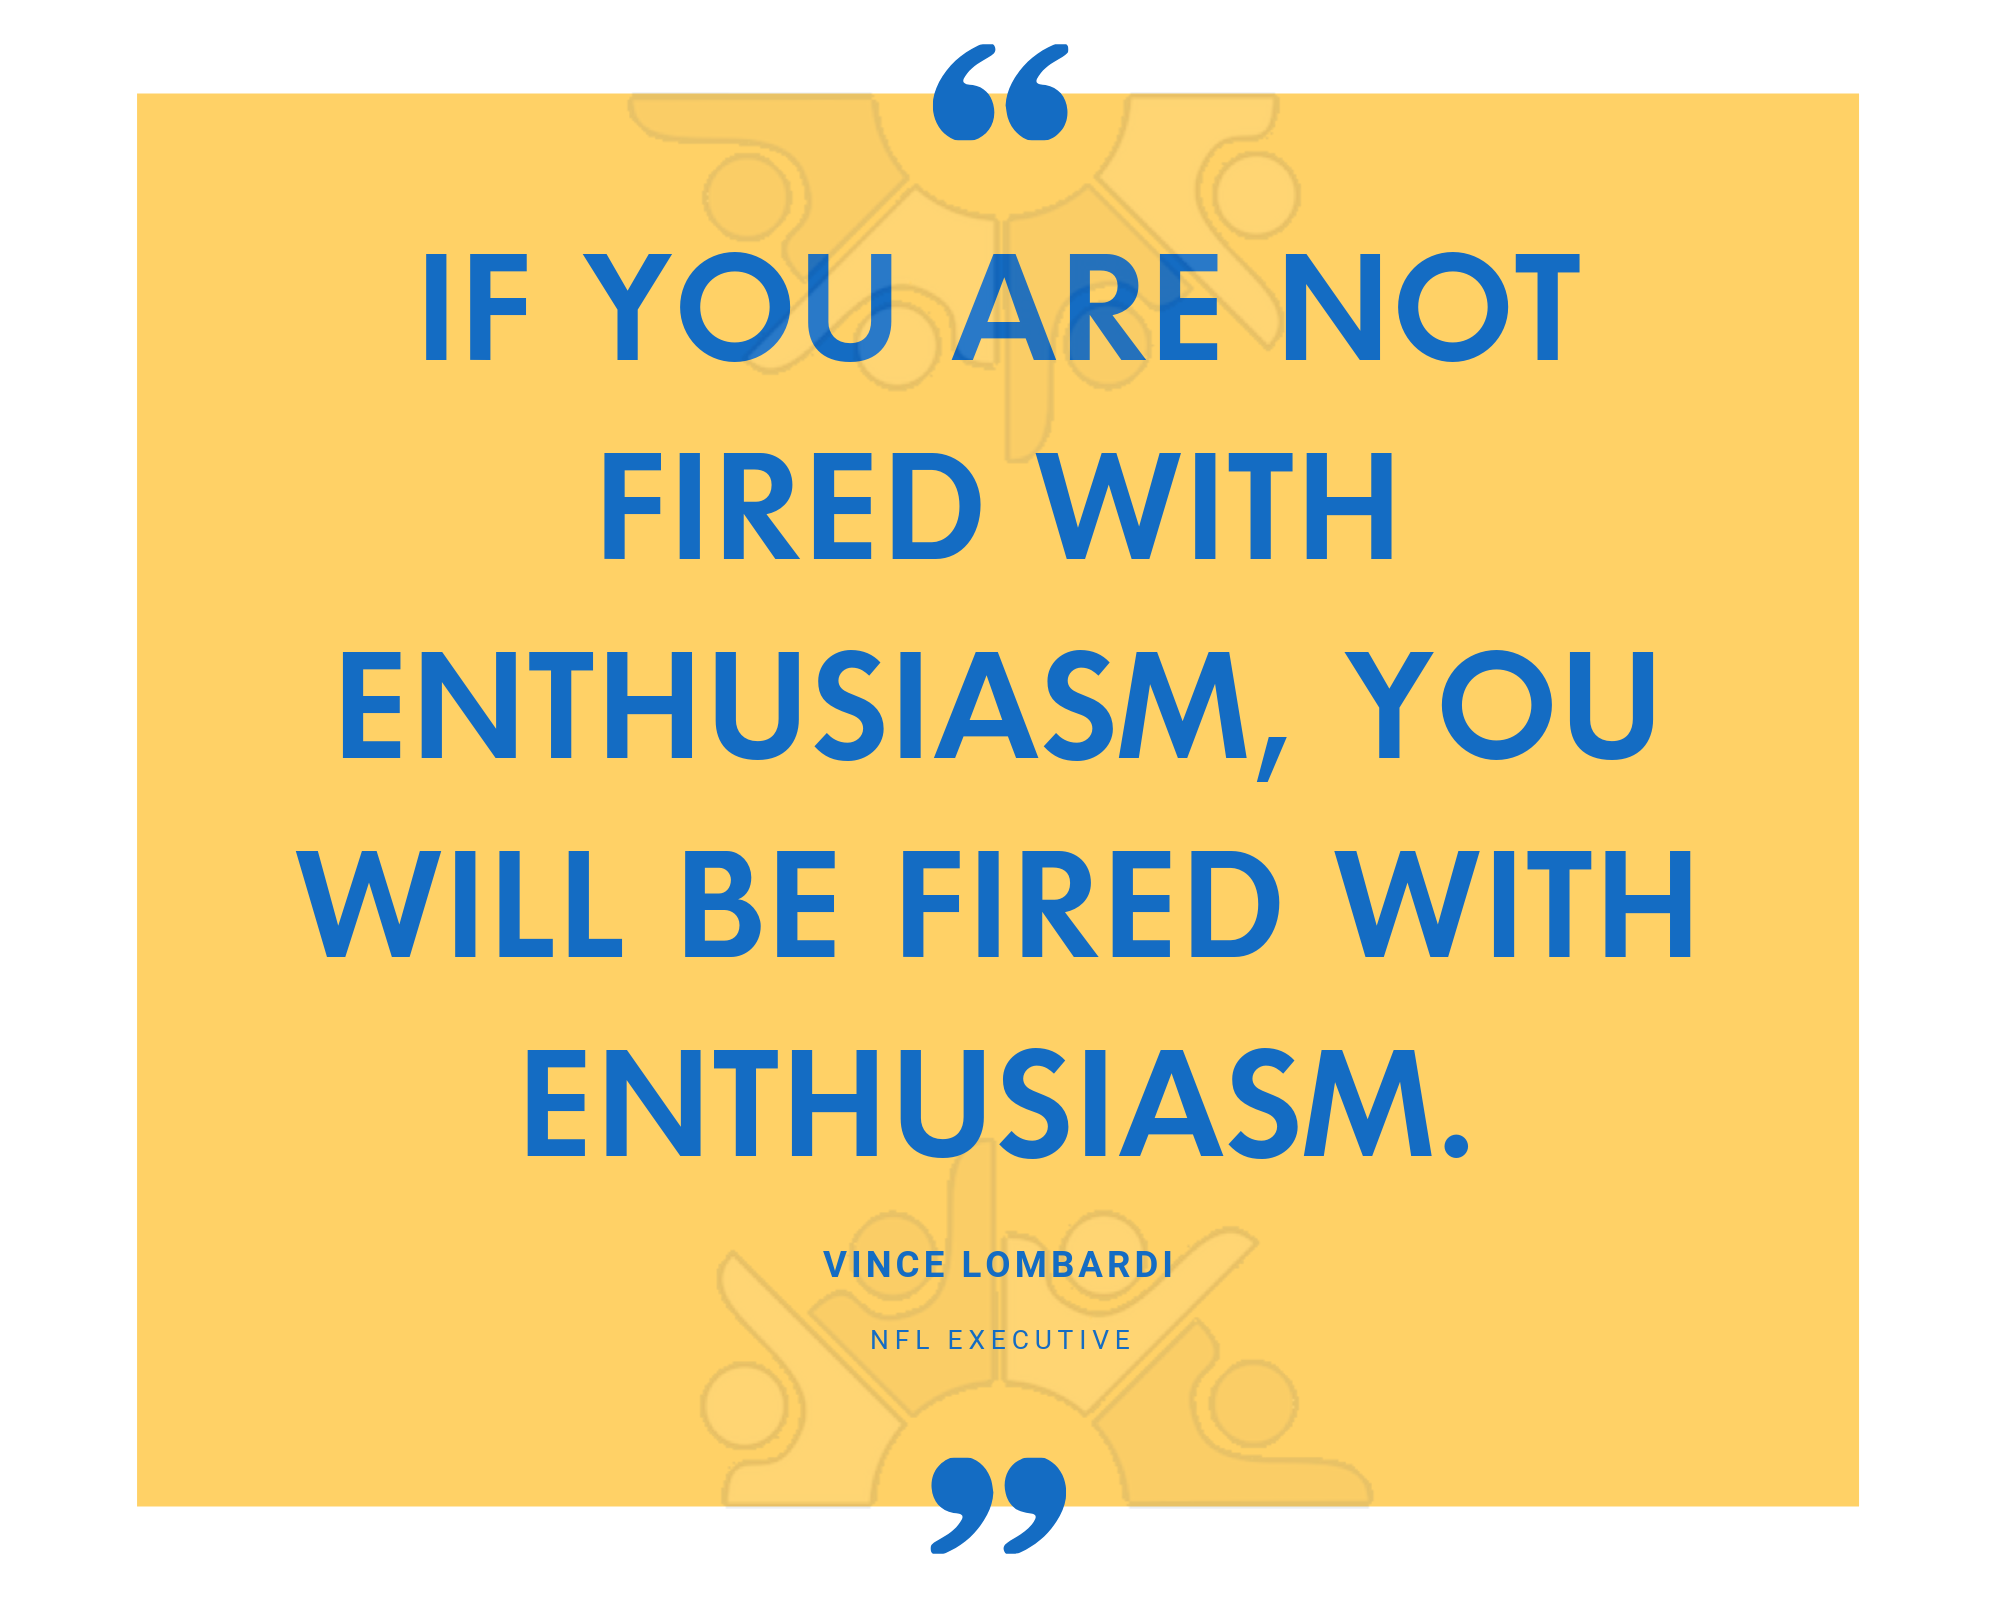 QUOTE If you are not fired with enthusiasm, you will be fired with enthusiasm.